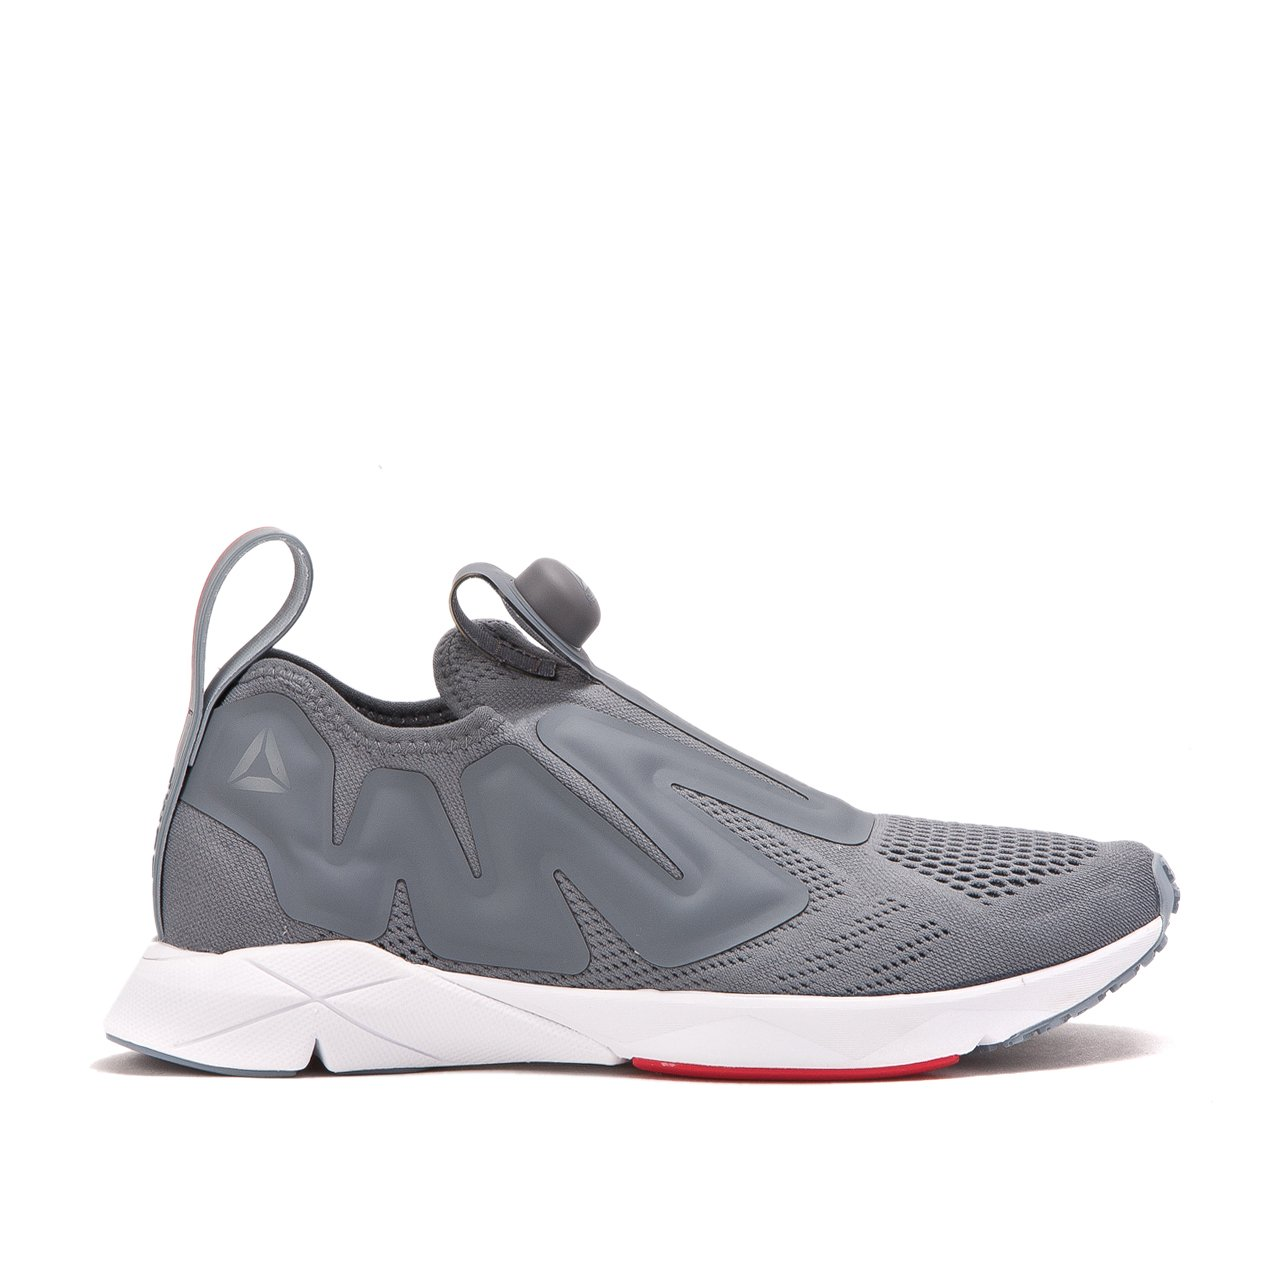 "Reebok Pump Supreme ""Engine"" (Grau / Weiß)"